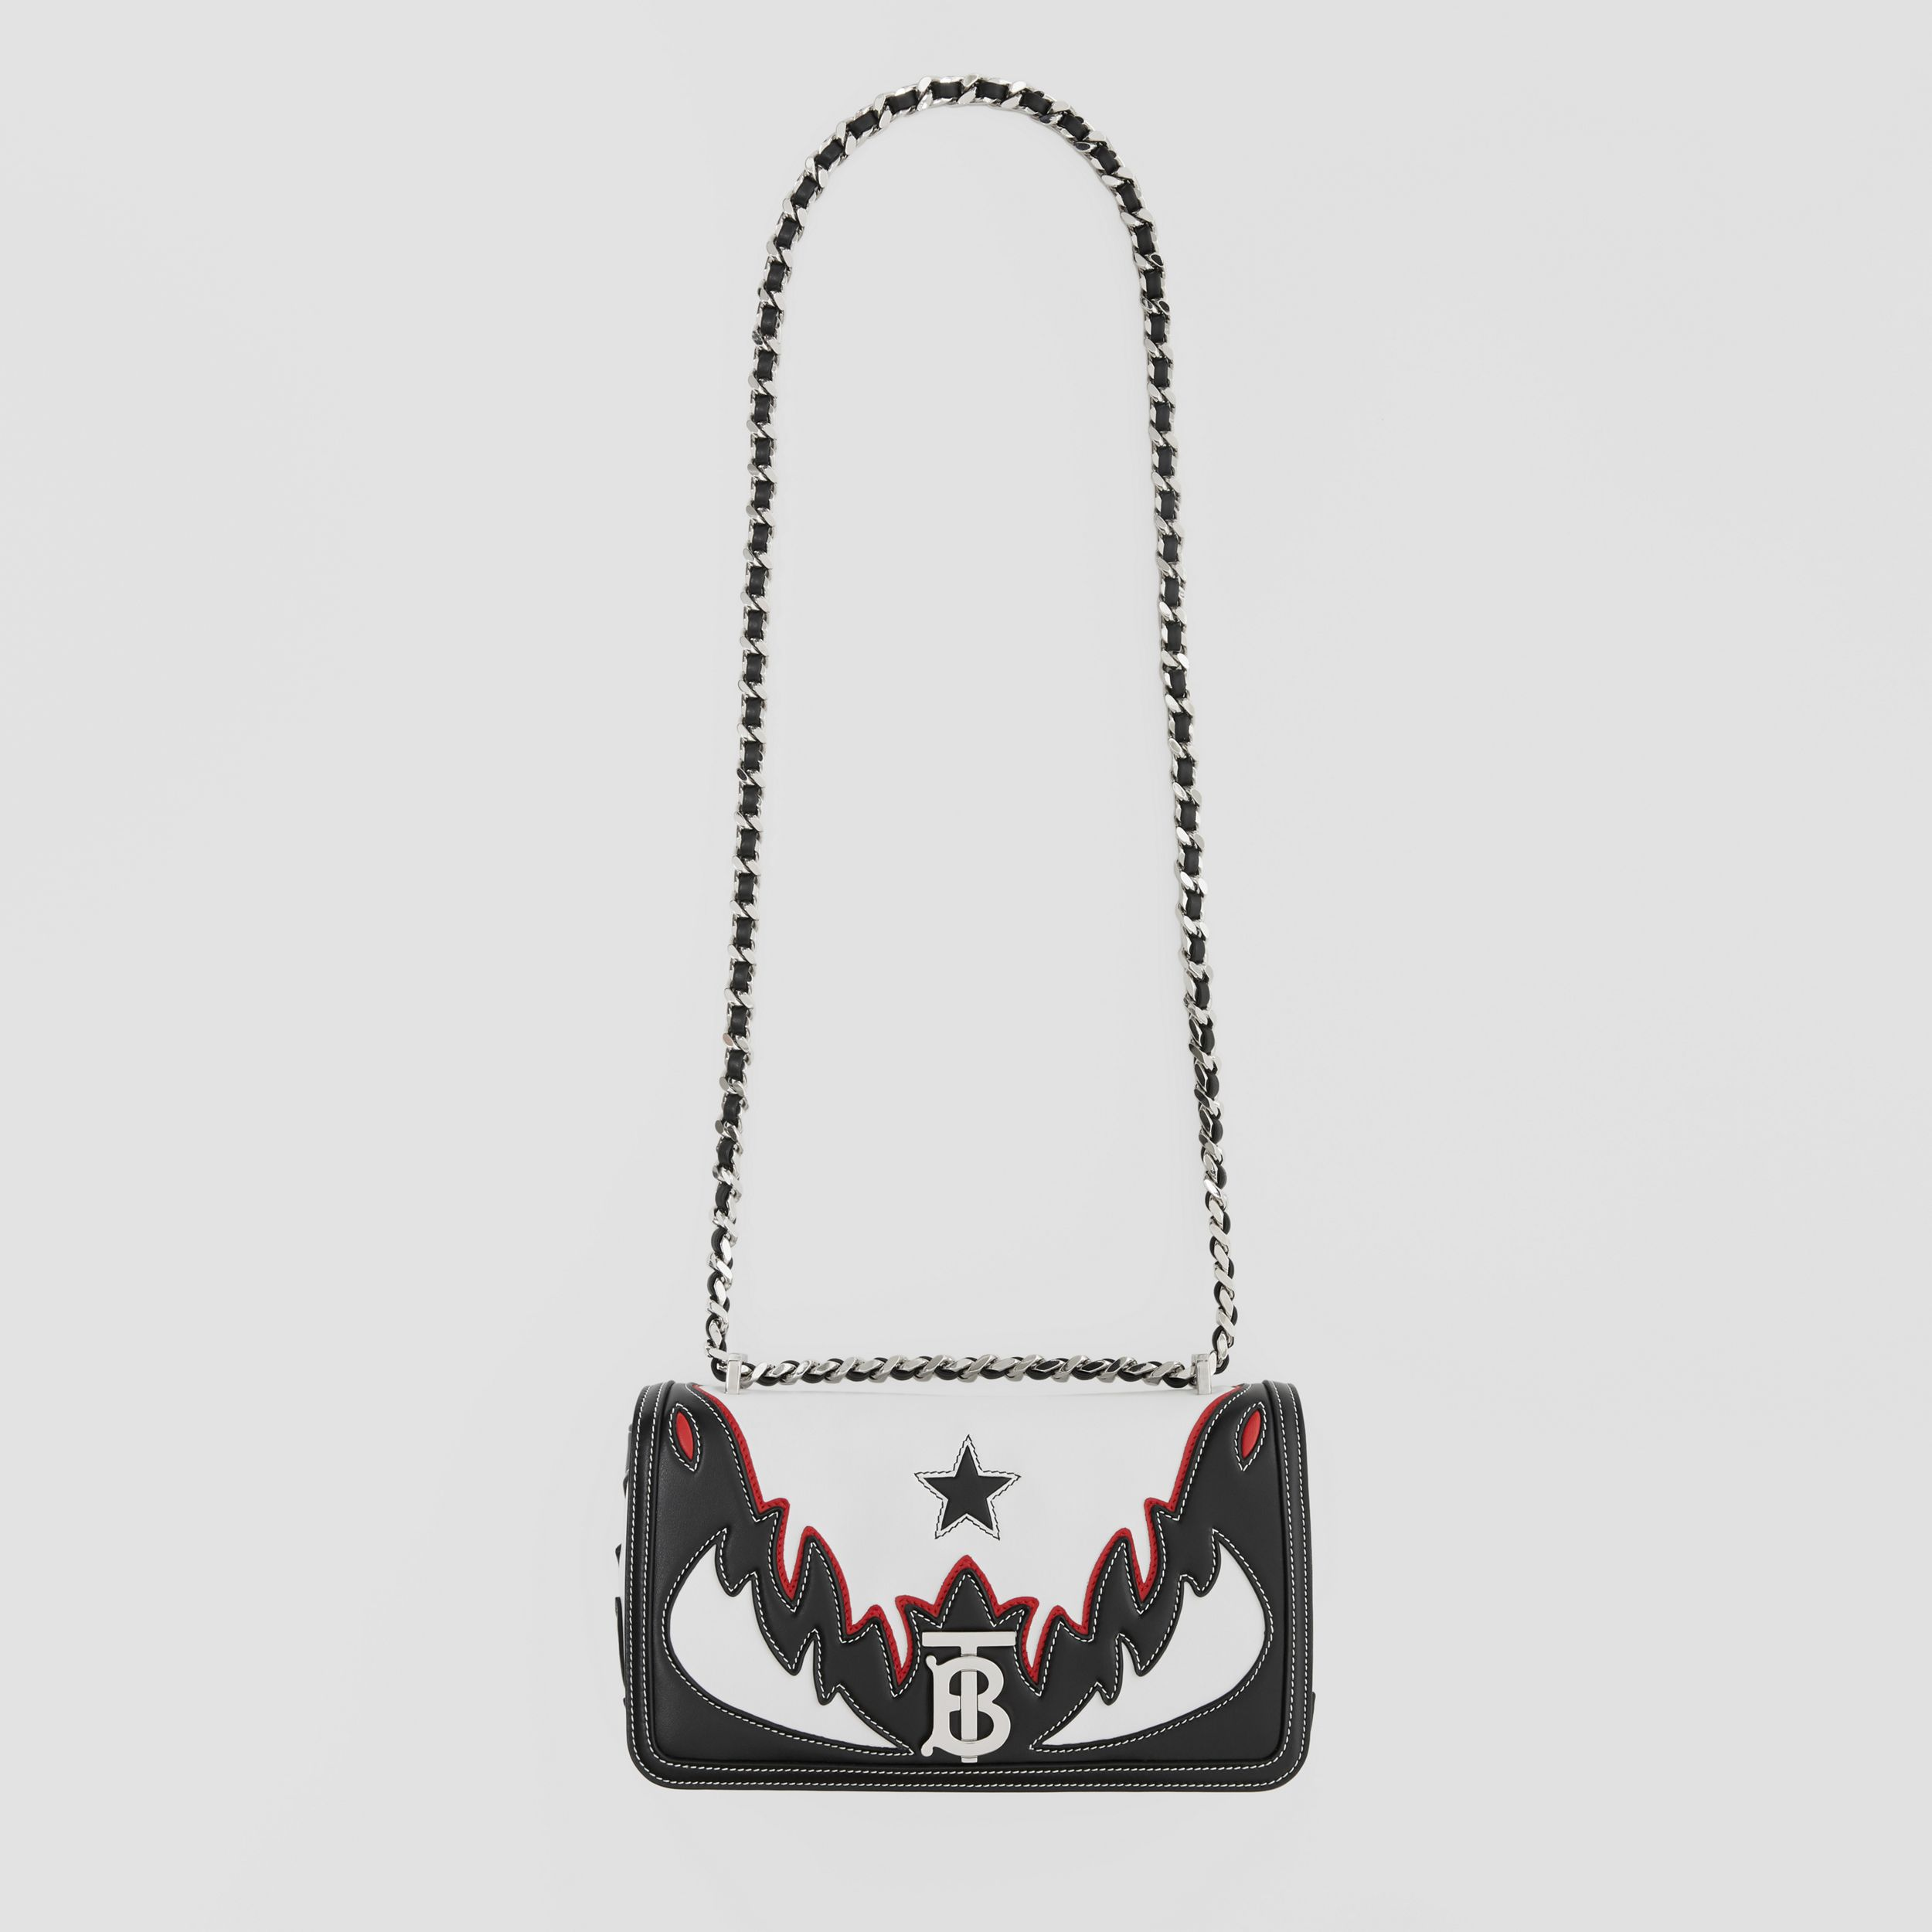 Small Topstitch Appliqué Leather Lola Bag in White/black/red - Women | Burberry - 4